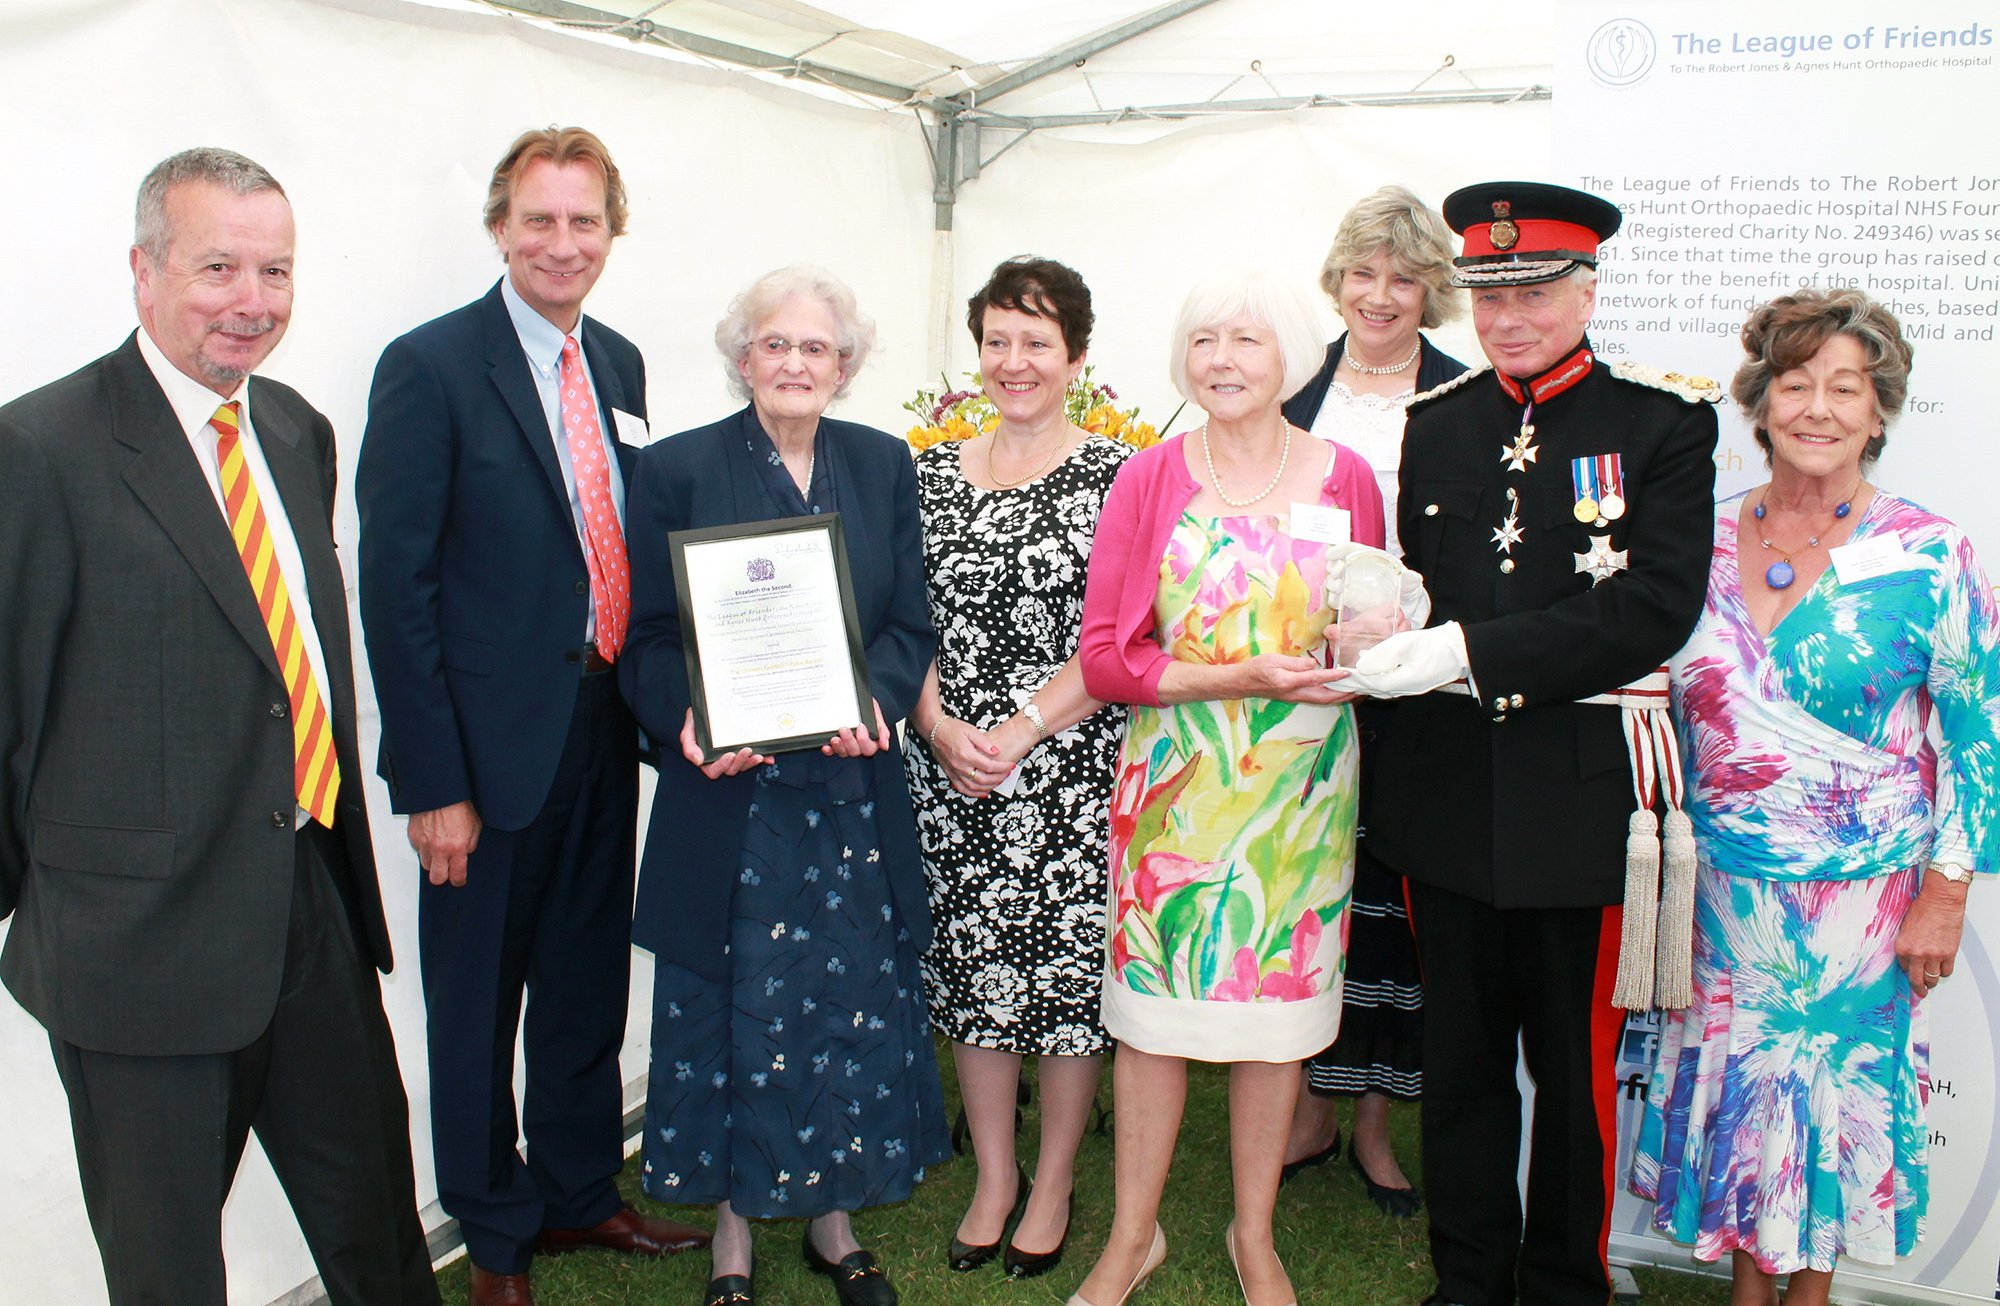 The League of Friends awarded 'The Queens Award for Voluntary Service' the MBE